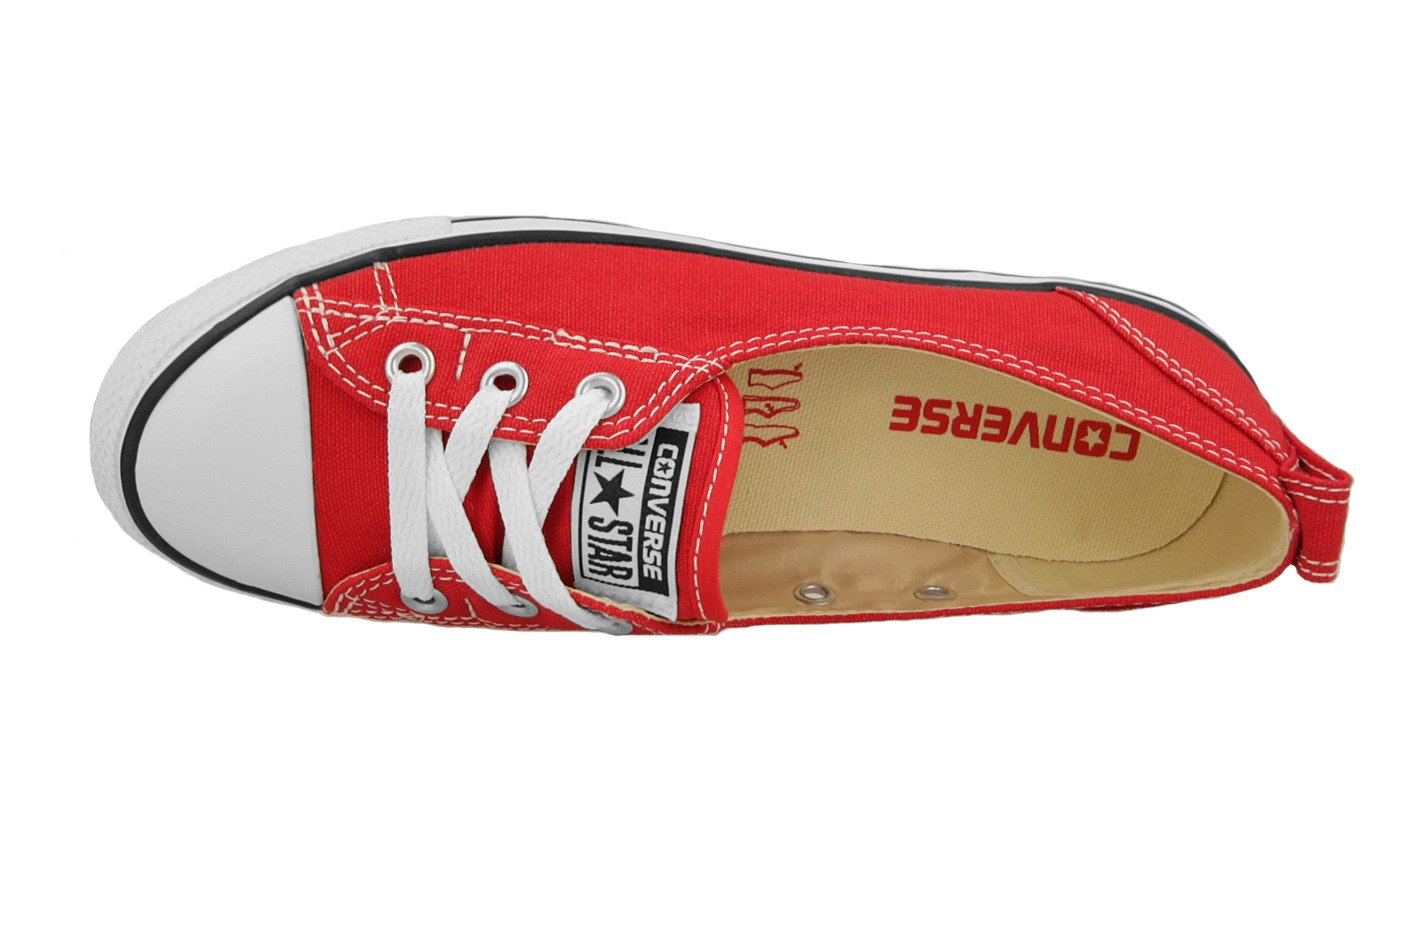 f7bfdd8ed eng pl WOMENS-SHOES-SNEAKER-CONVERSE-CT-BALLET-LACE-547166C-7243 7.jpg